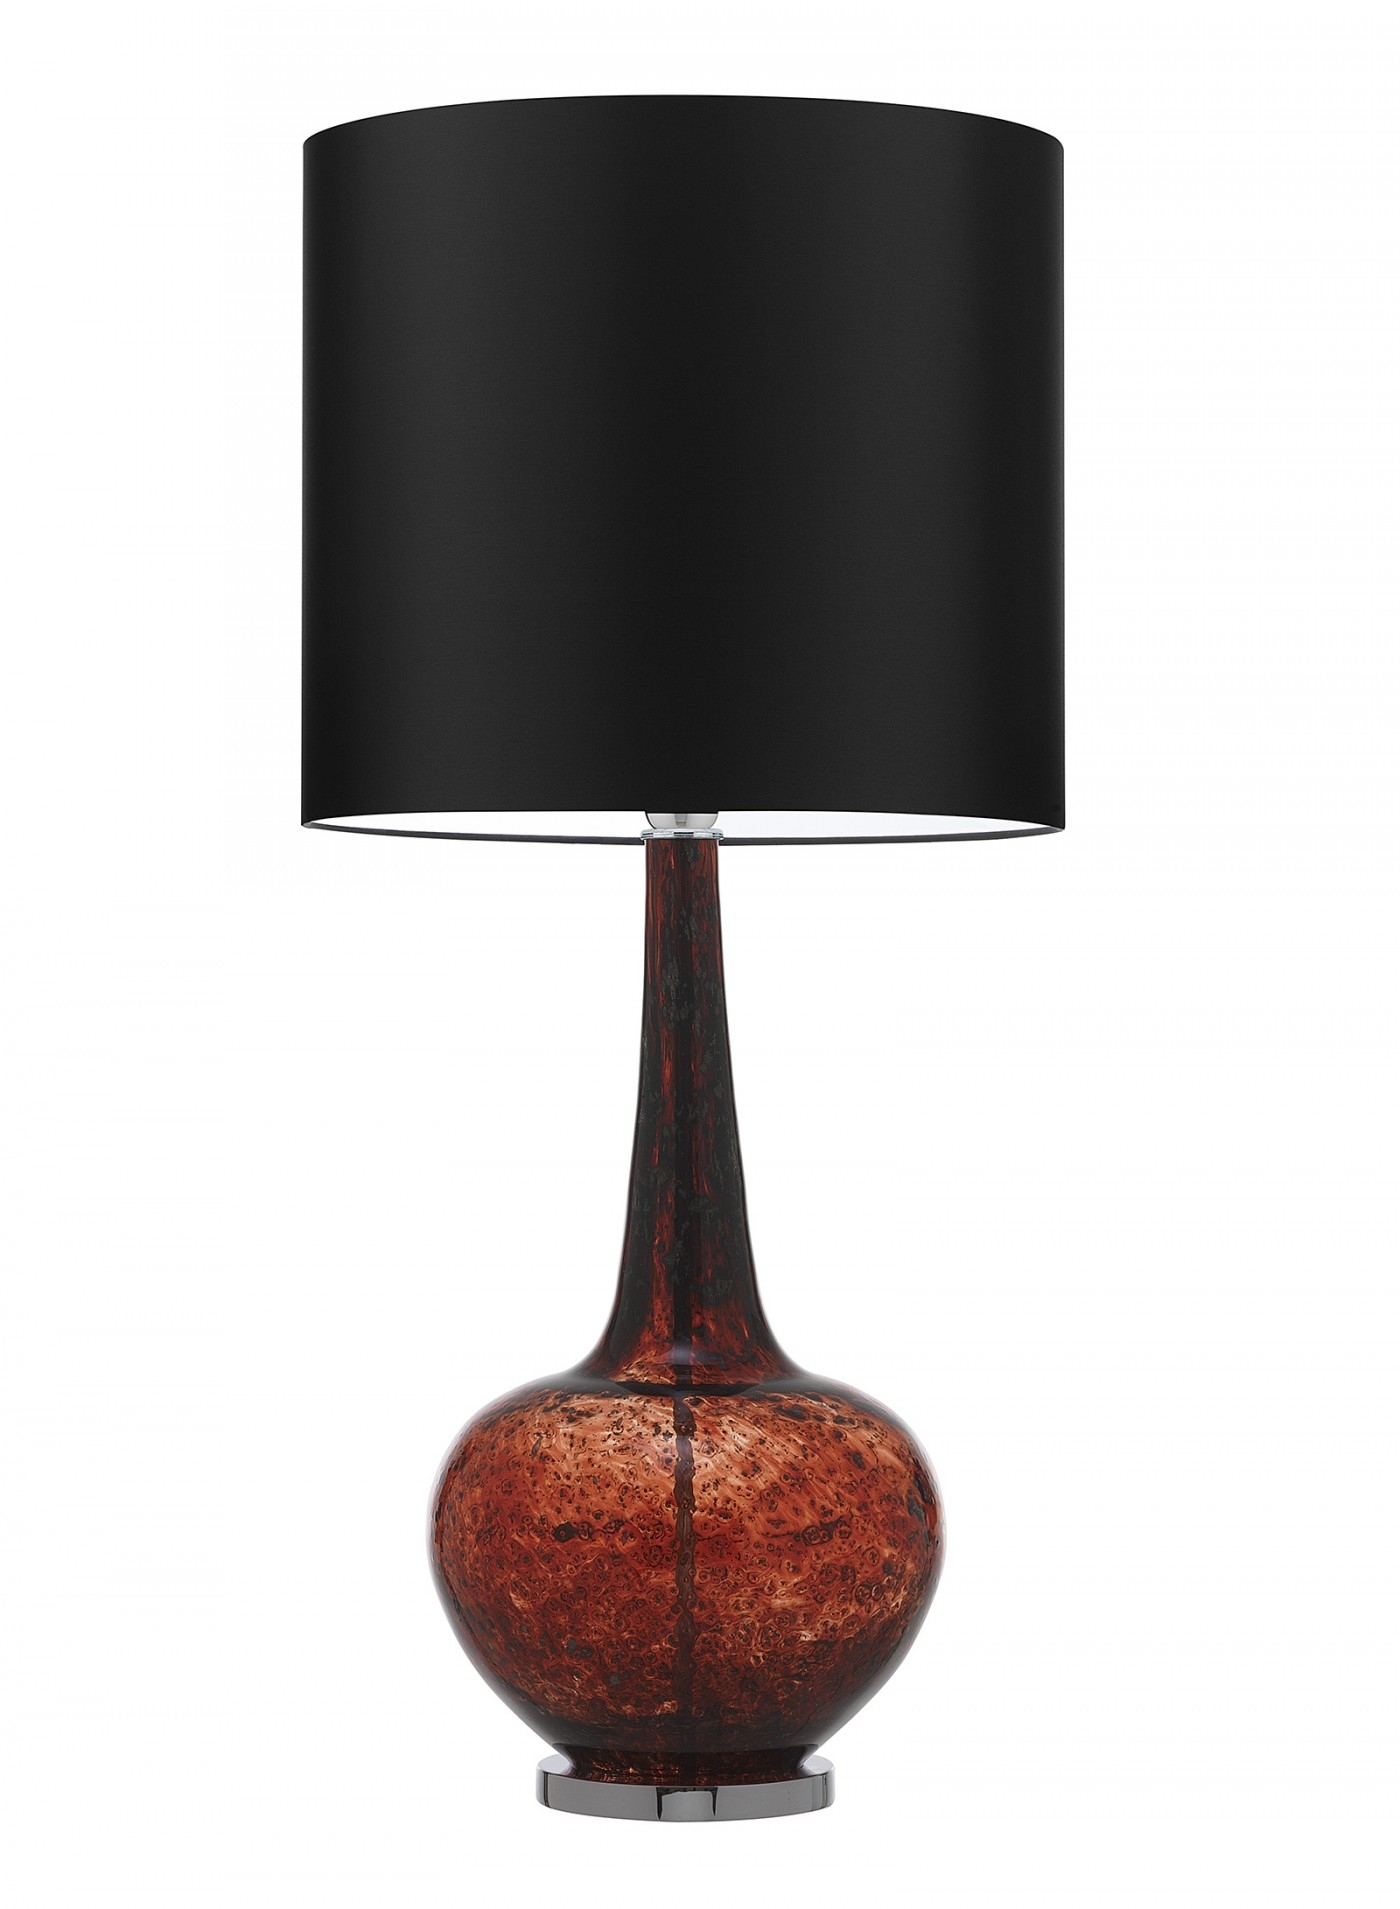 Furniture : Tuscan Table Lamps Shine Light On It Lighting Facts Lamp Within Tuscan Table Lamps For Living Room (View 15 of 15)